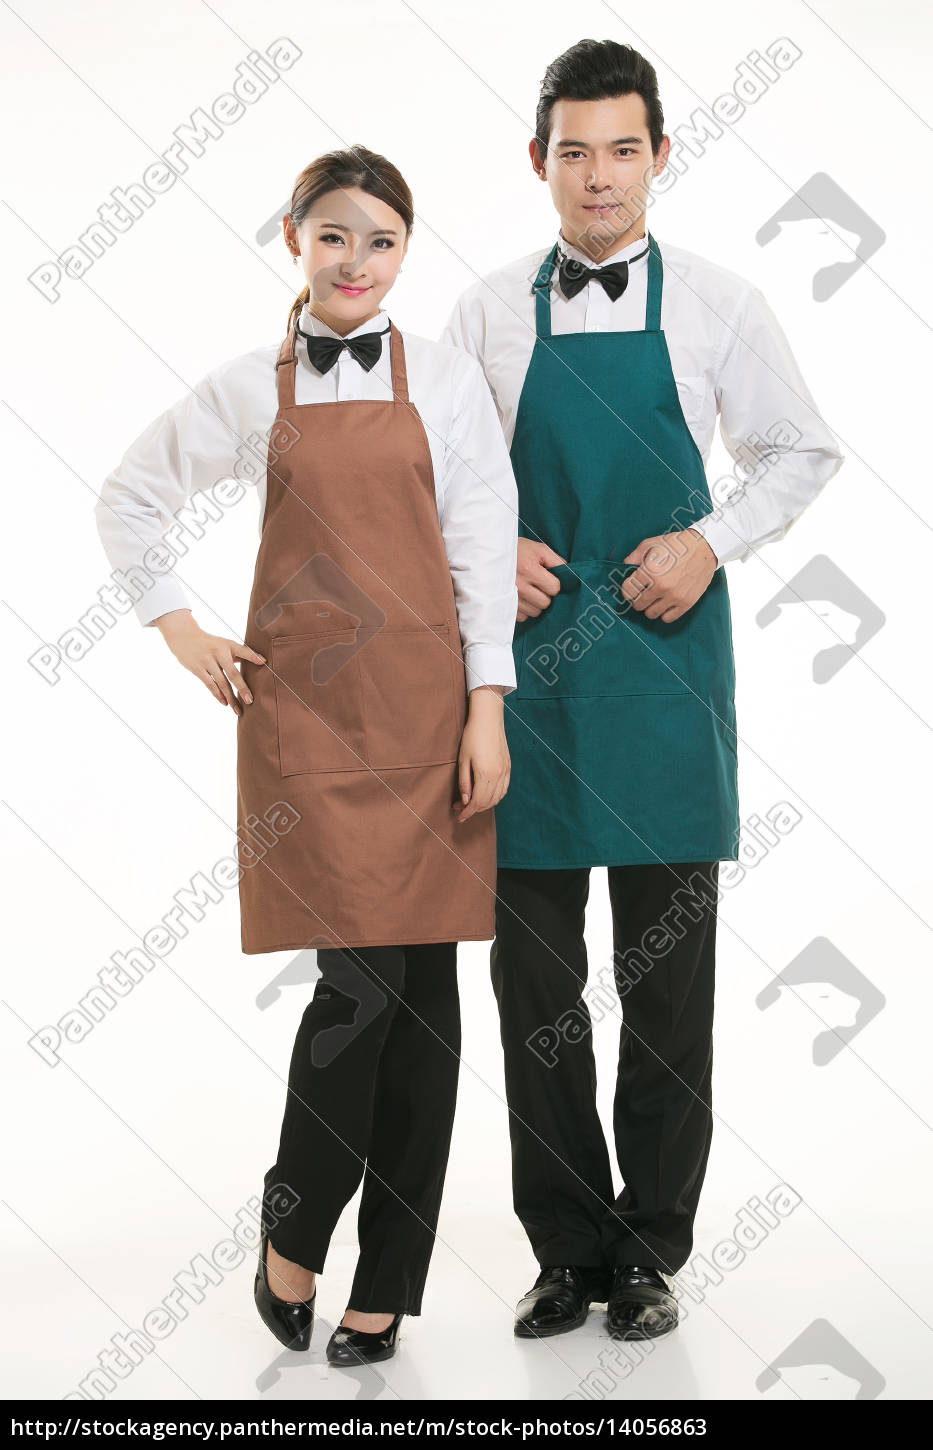 wear, clothing, occupation, chinese, waiters, in - 14056863